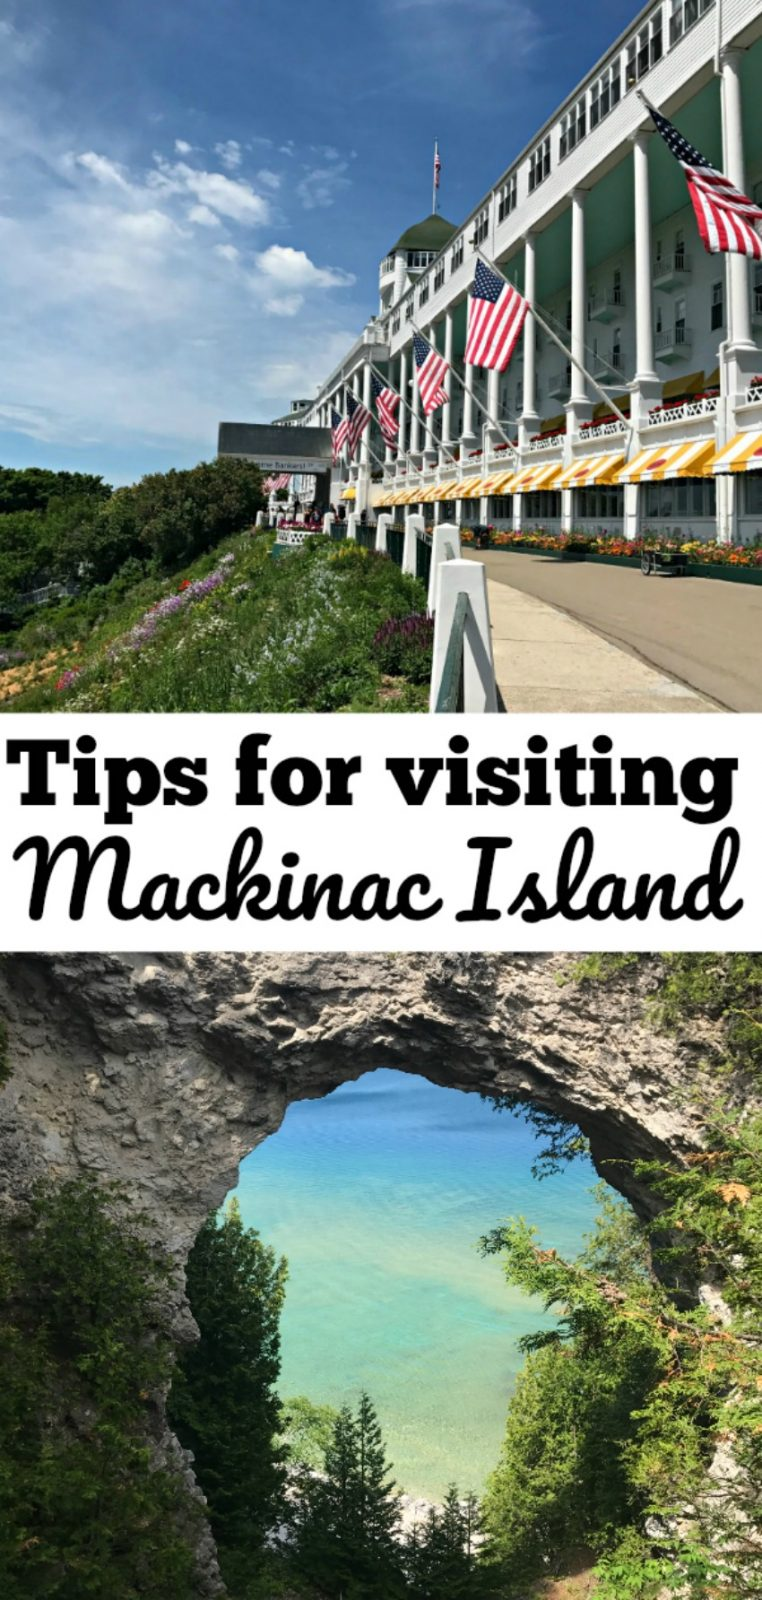 Tips for Visiting Mackinac Island